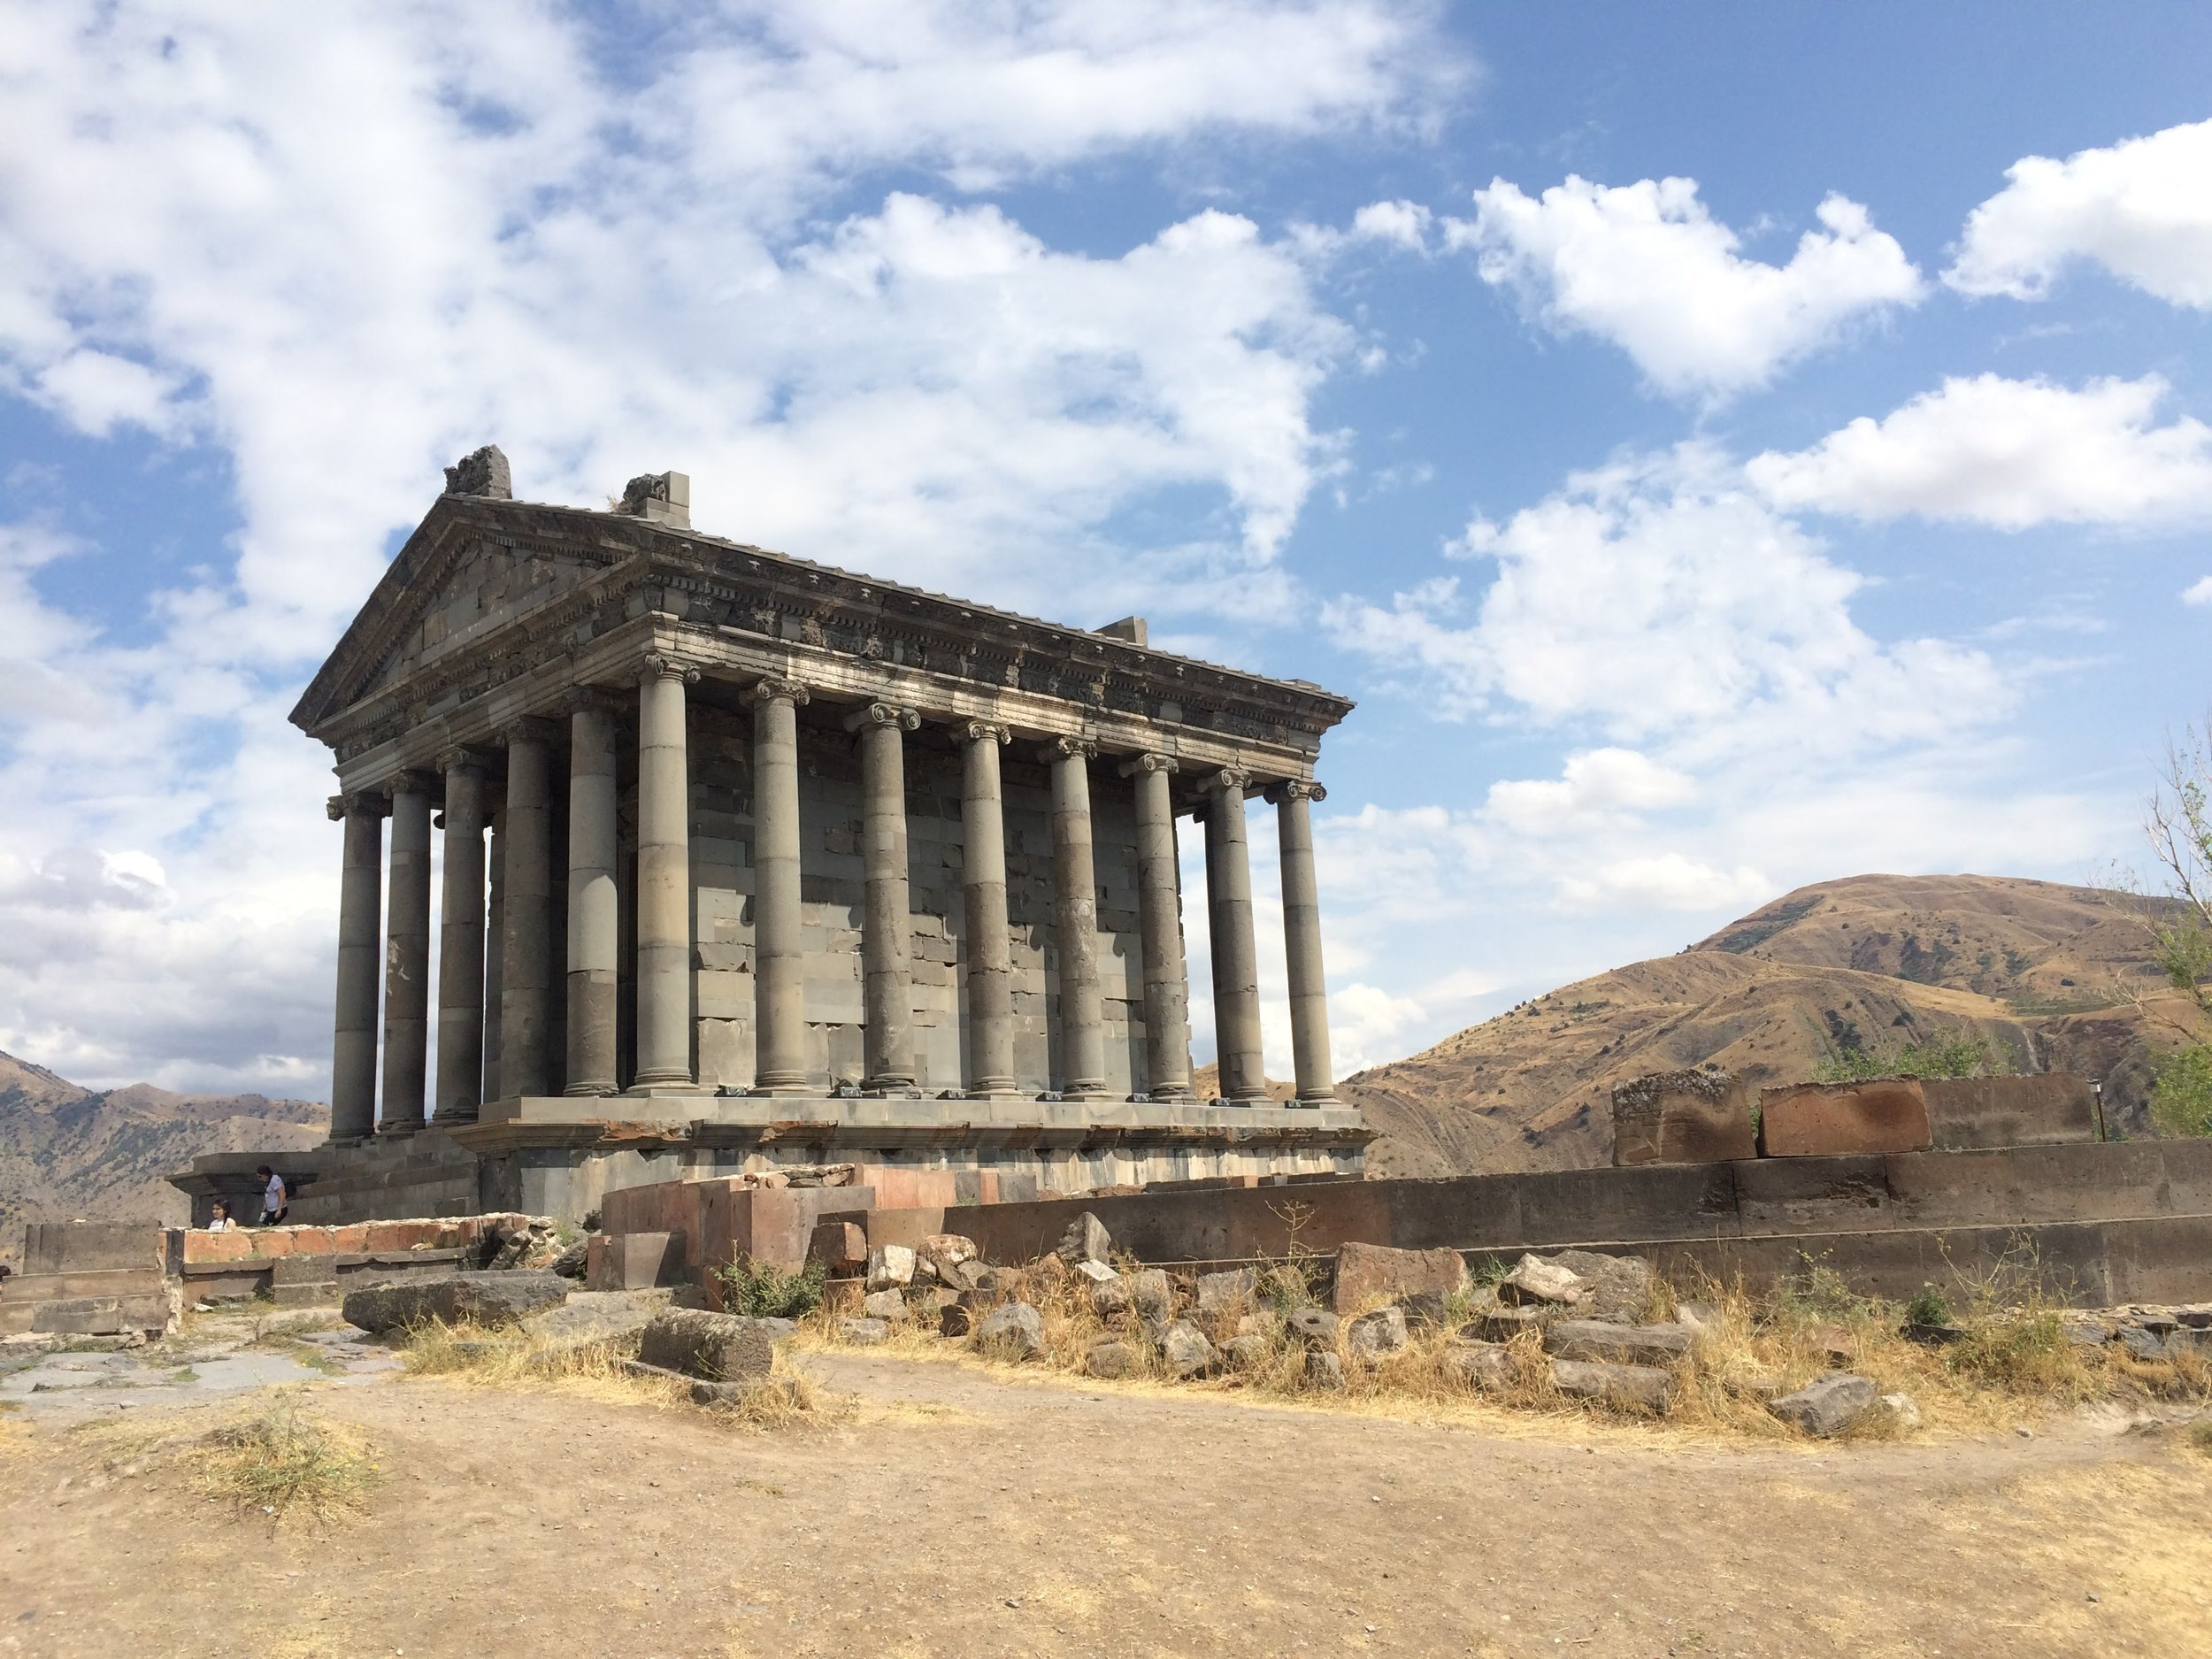 SMITHSONIAN: What's an Ancient Roman Temple Doing in Armenia?